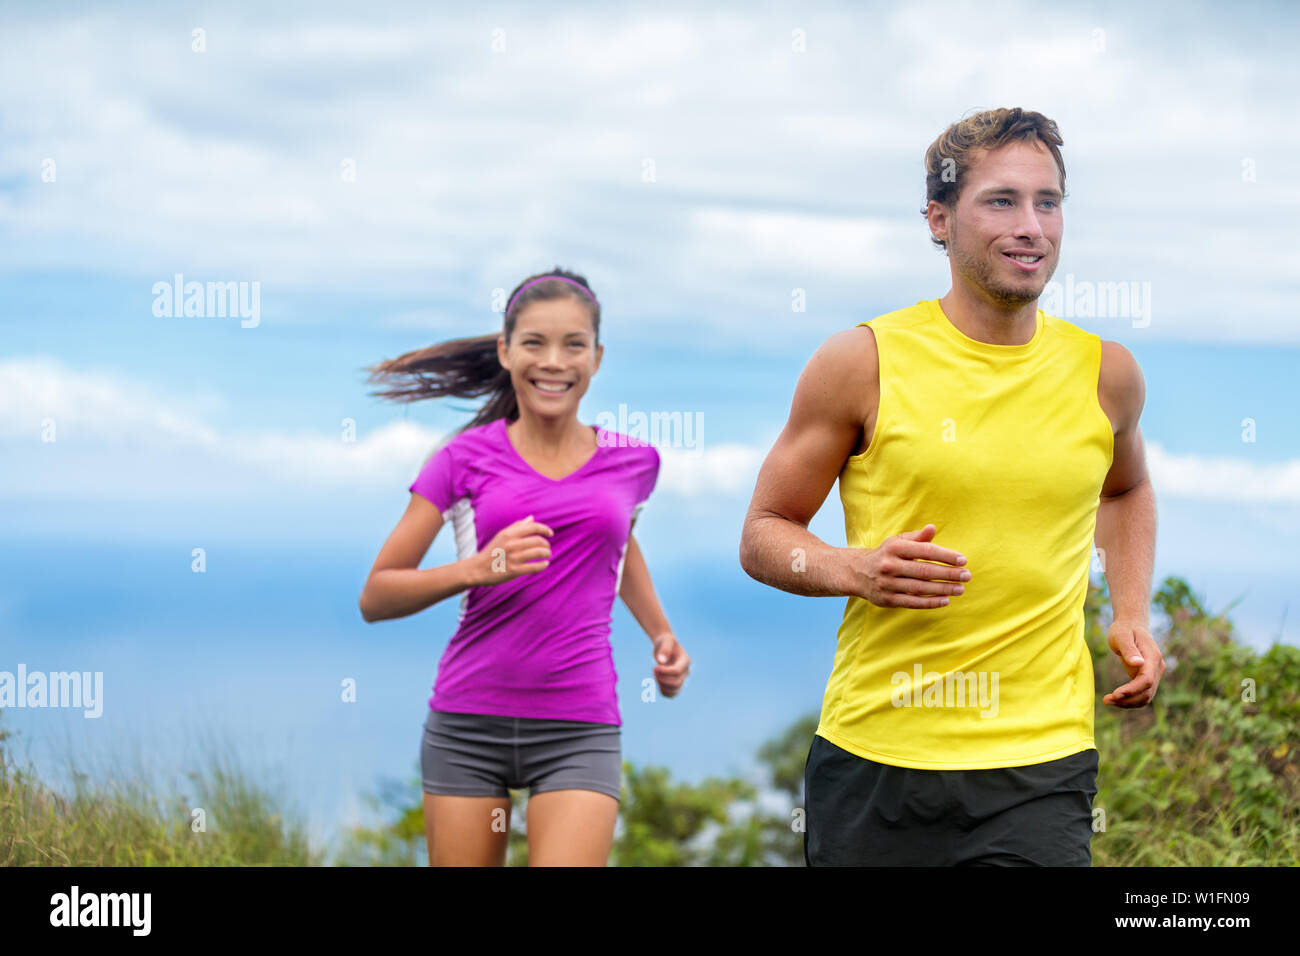 Healthy sports people trail running living an active life. Happy lifestyle couple of athletes training cardio together in summer outdoors. Multi-ethnic group Asian woman with handsome fit man trainer. - Stock Photo